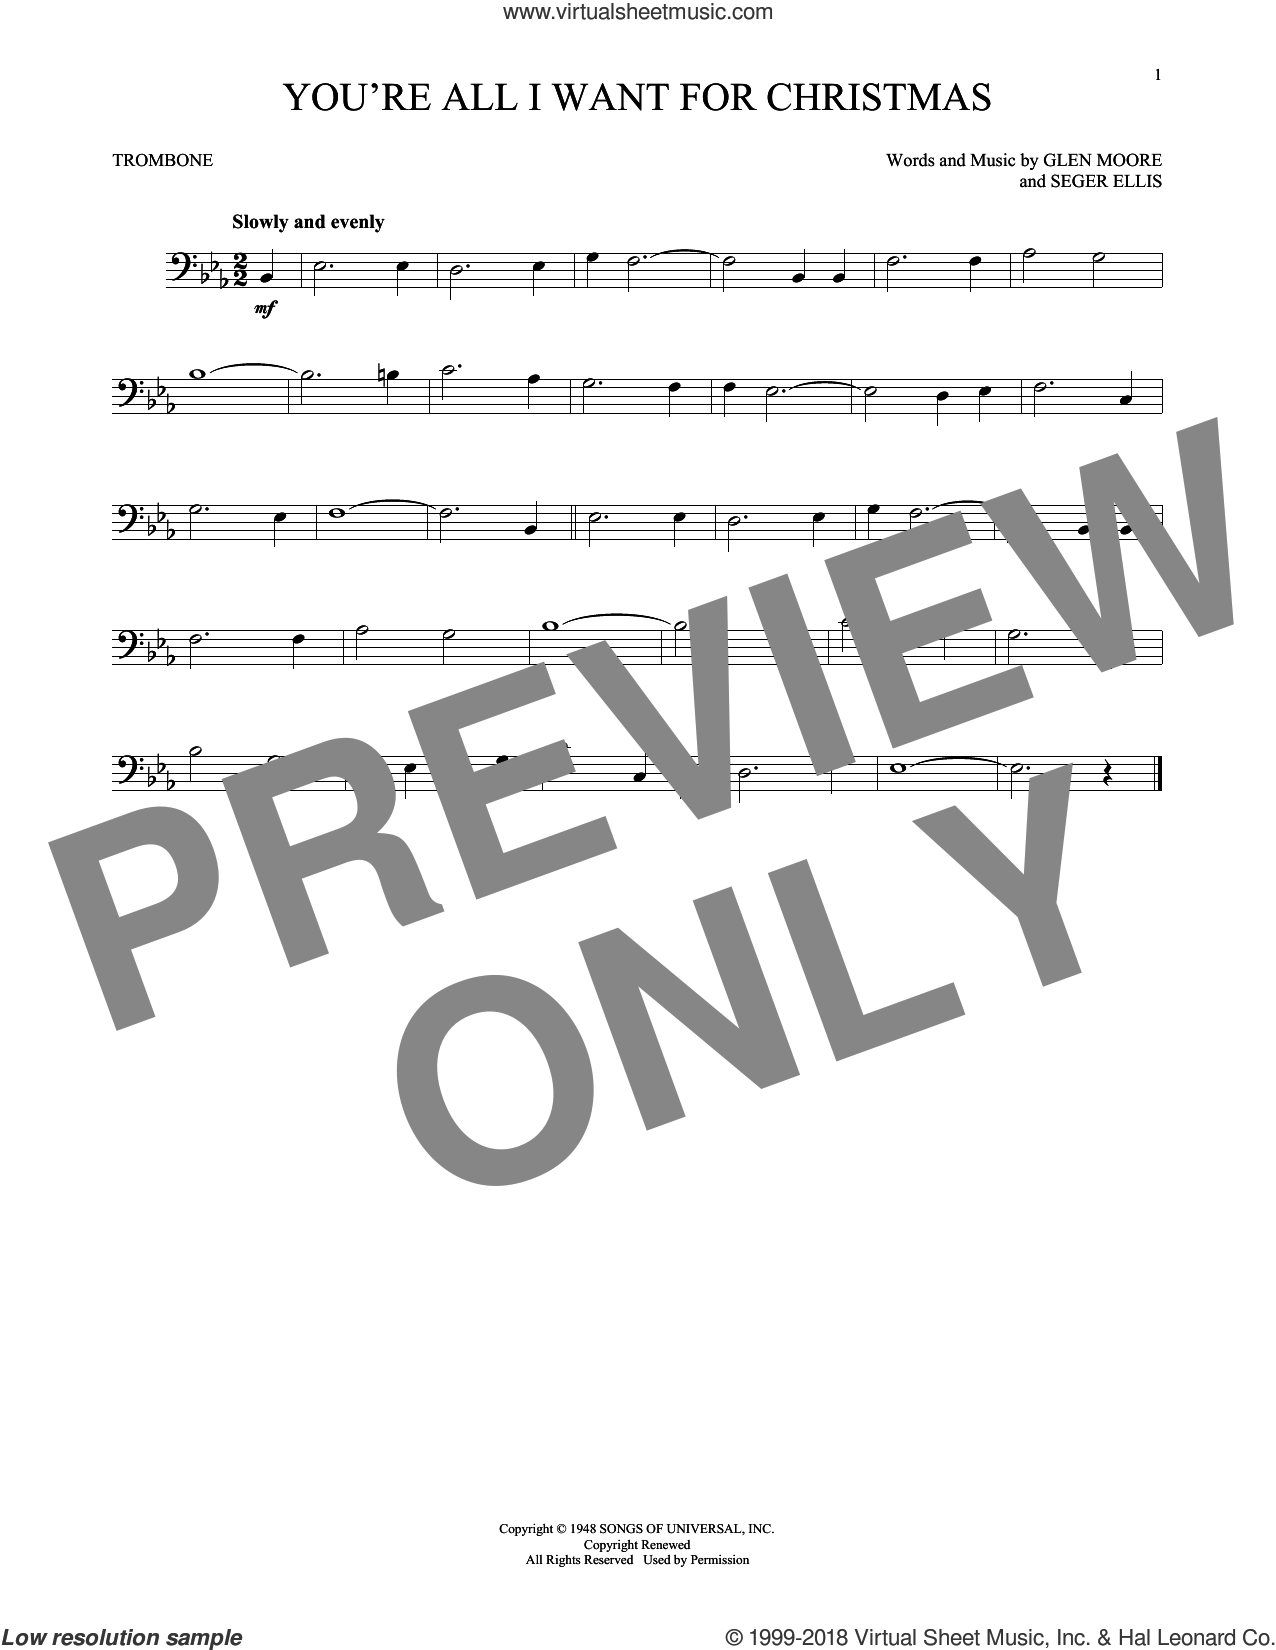 You're All I Want For Christmas sheet music for trombone solo by Glen Moore, Frank Gallagher, Glen Moore & Seger Ellis and Seger Ellis, intermediate skill level